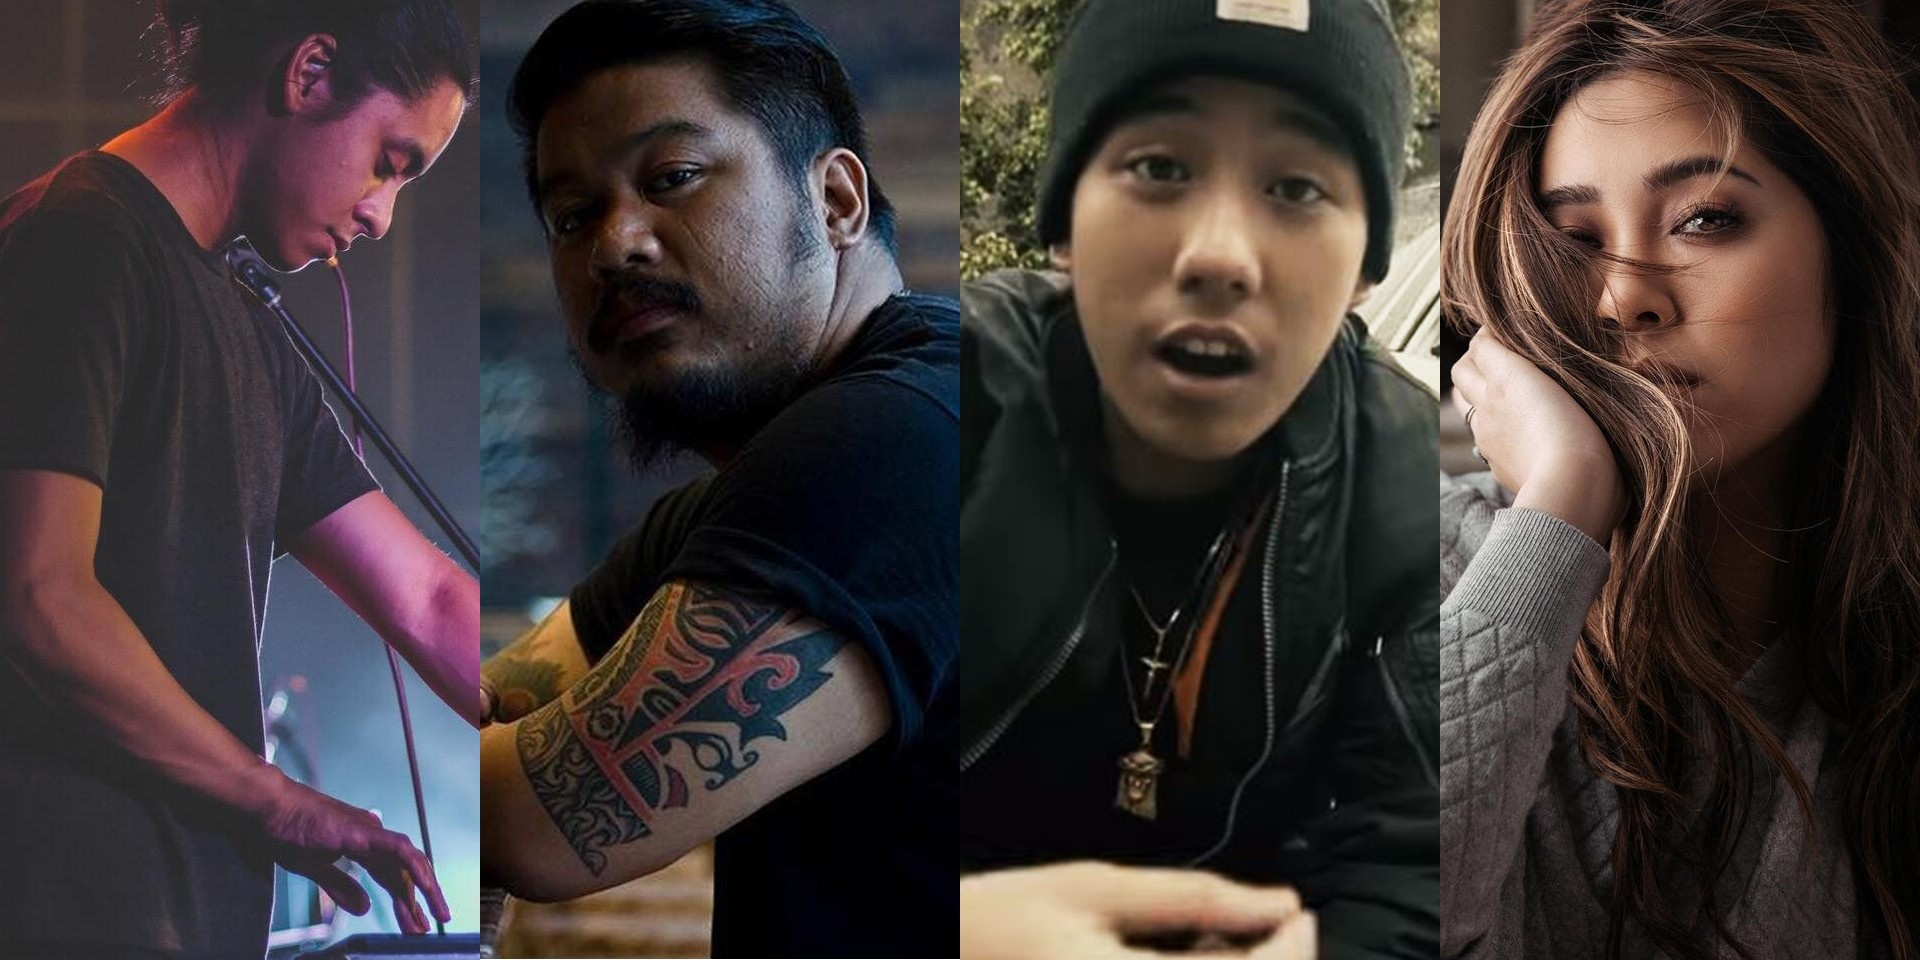 Tandems '91, The Metro Fantastic, Shanti Dope, Moira Dela Torre, and more release new music – listen